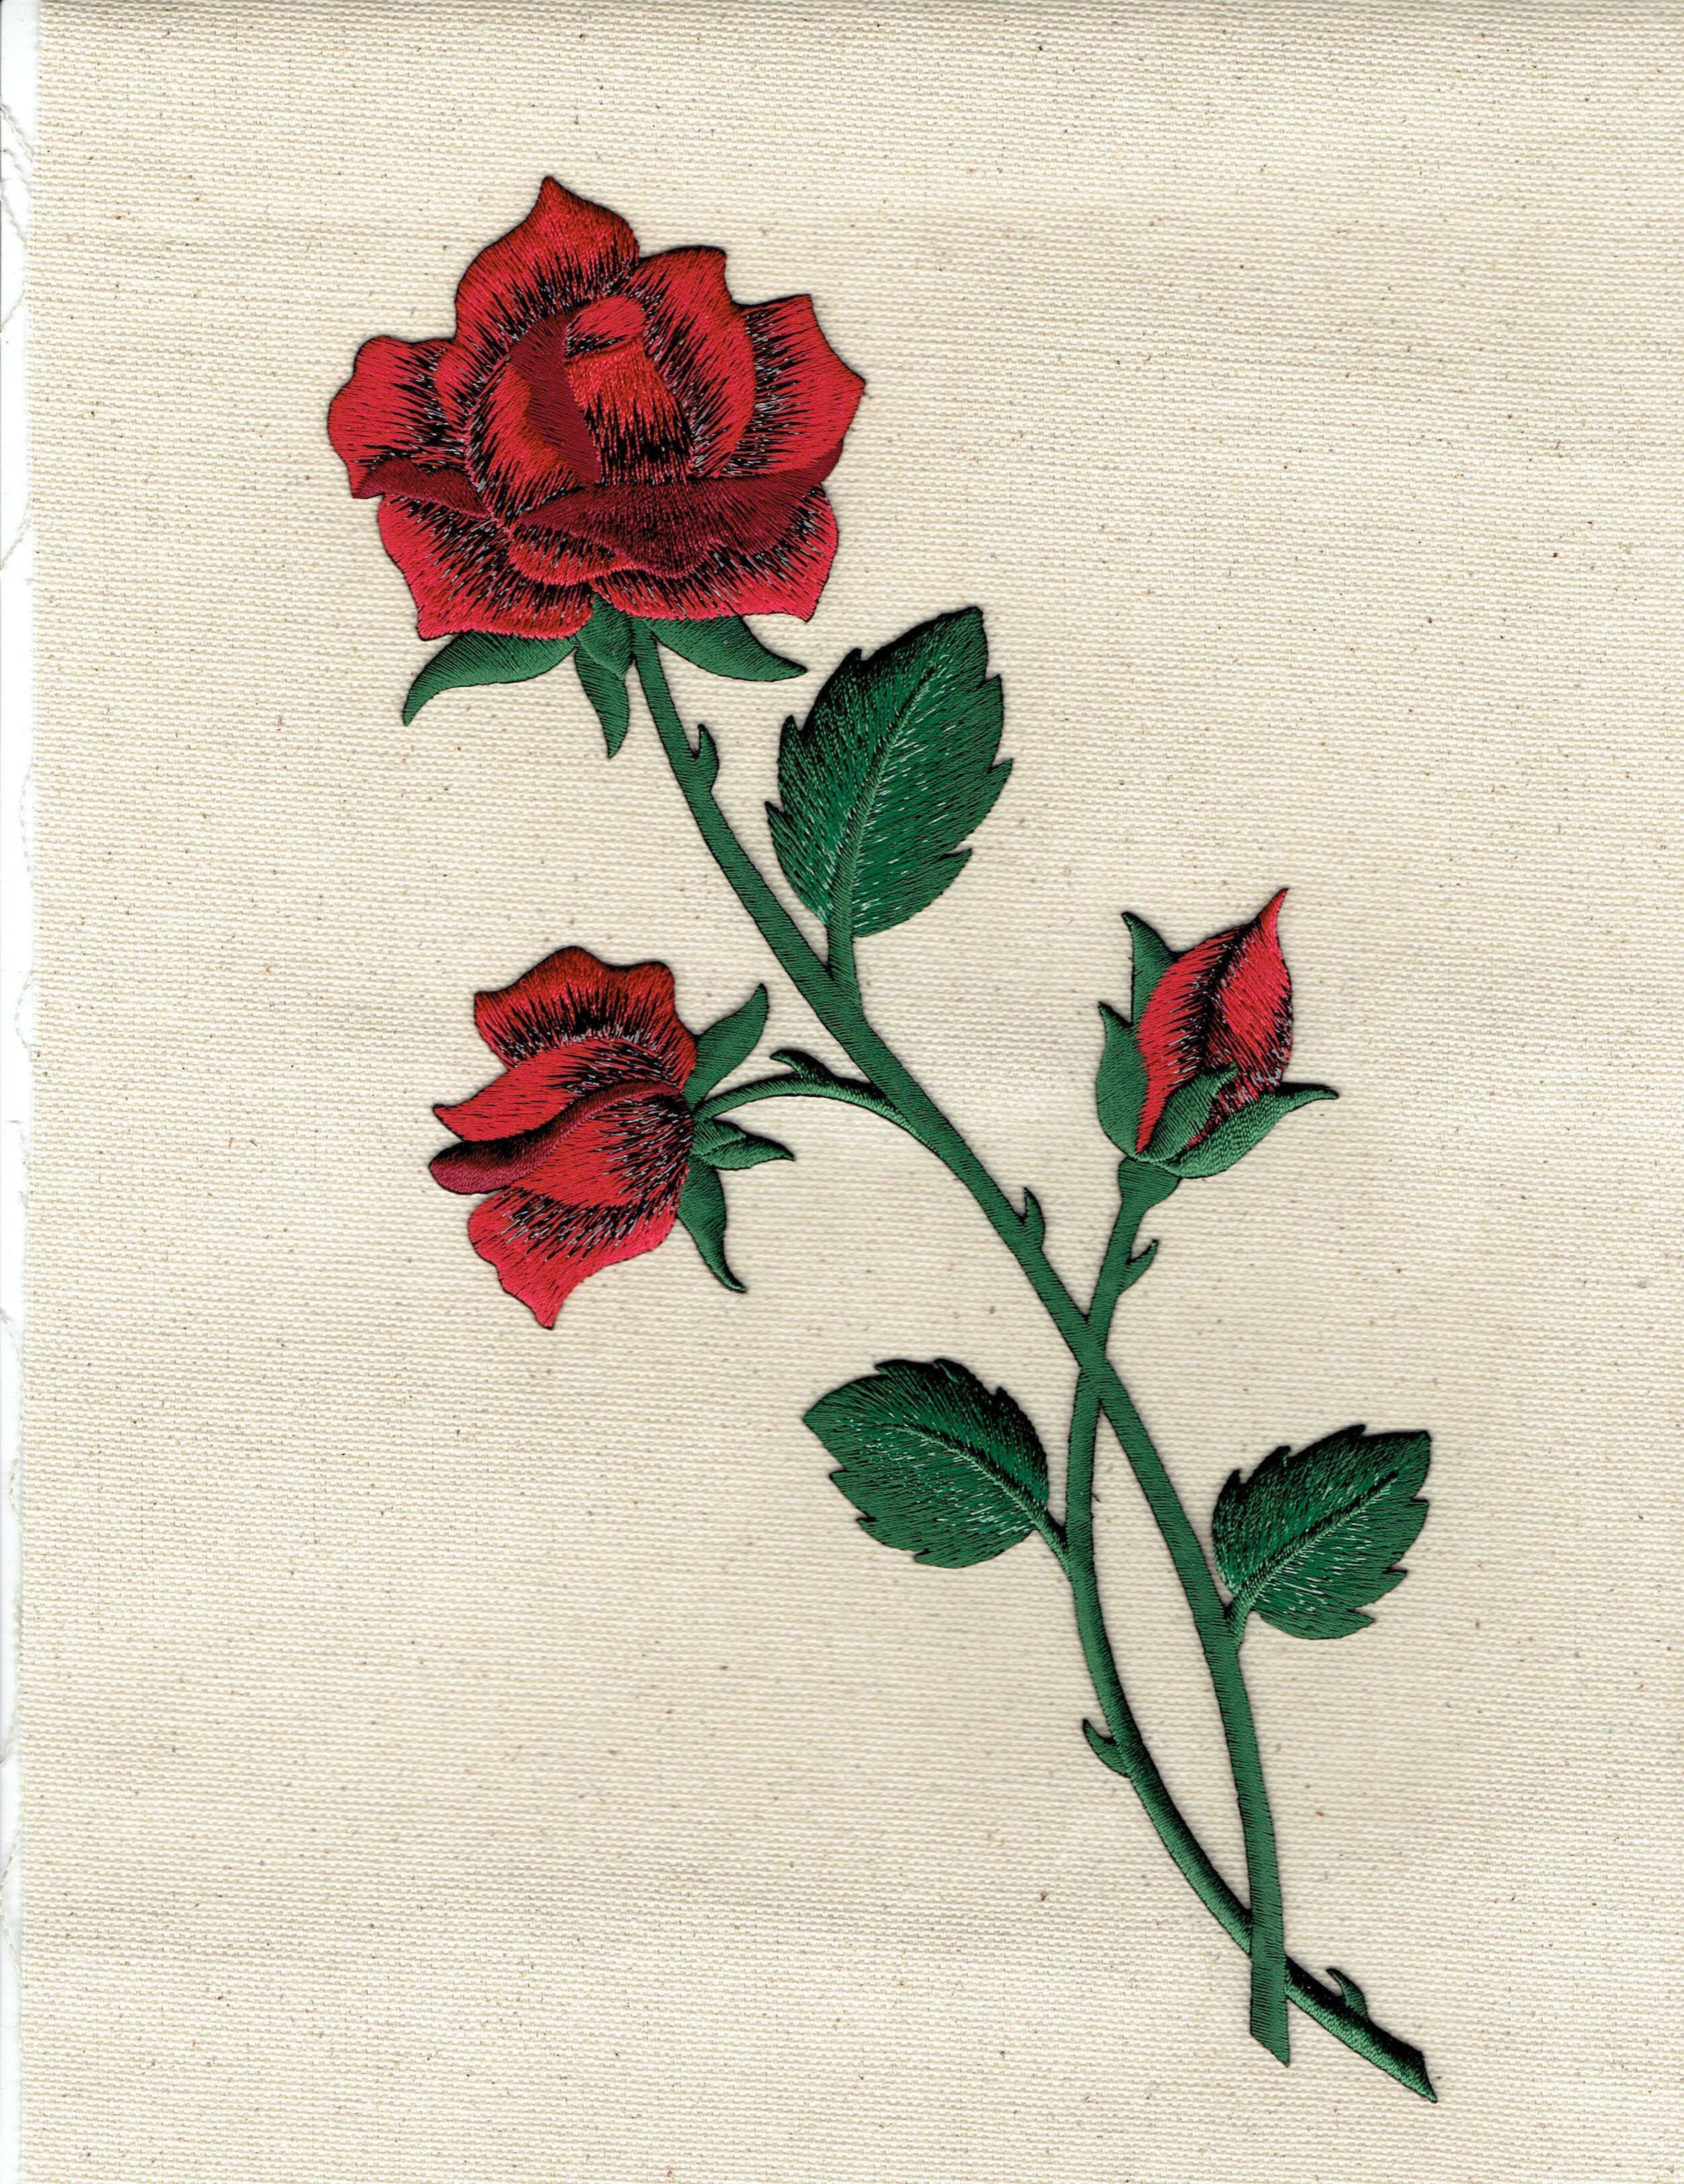 cee1a70416b00b Large - Red Rose - Open Petals on Long Stem - Flowers - Iron on Applique - Embroidered  Patch - 153108A